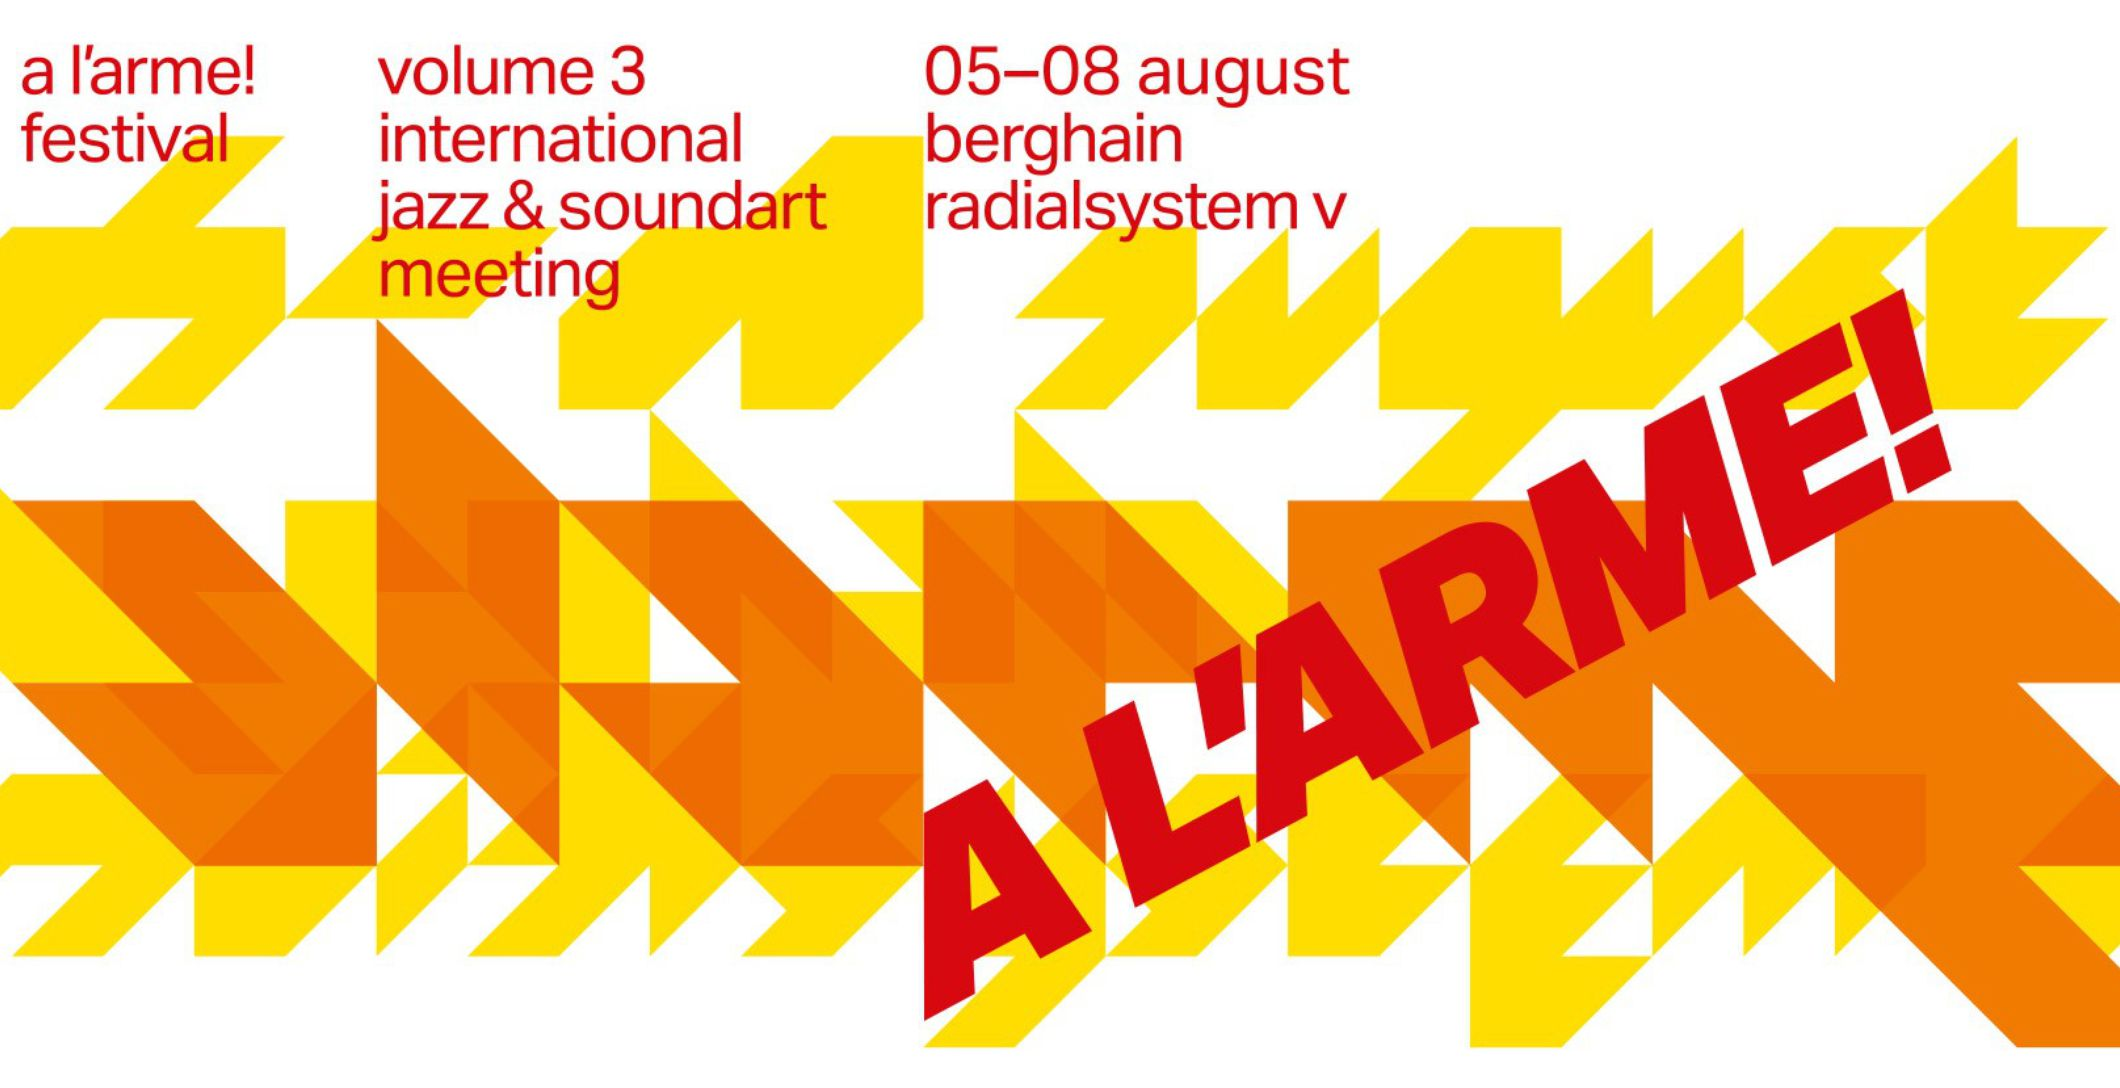 A L'ARME! - International Jazz & Soundart Meeting